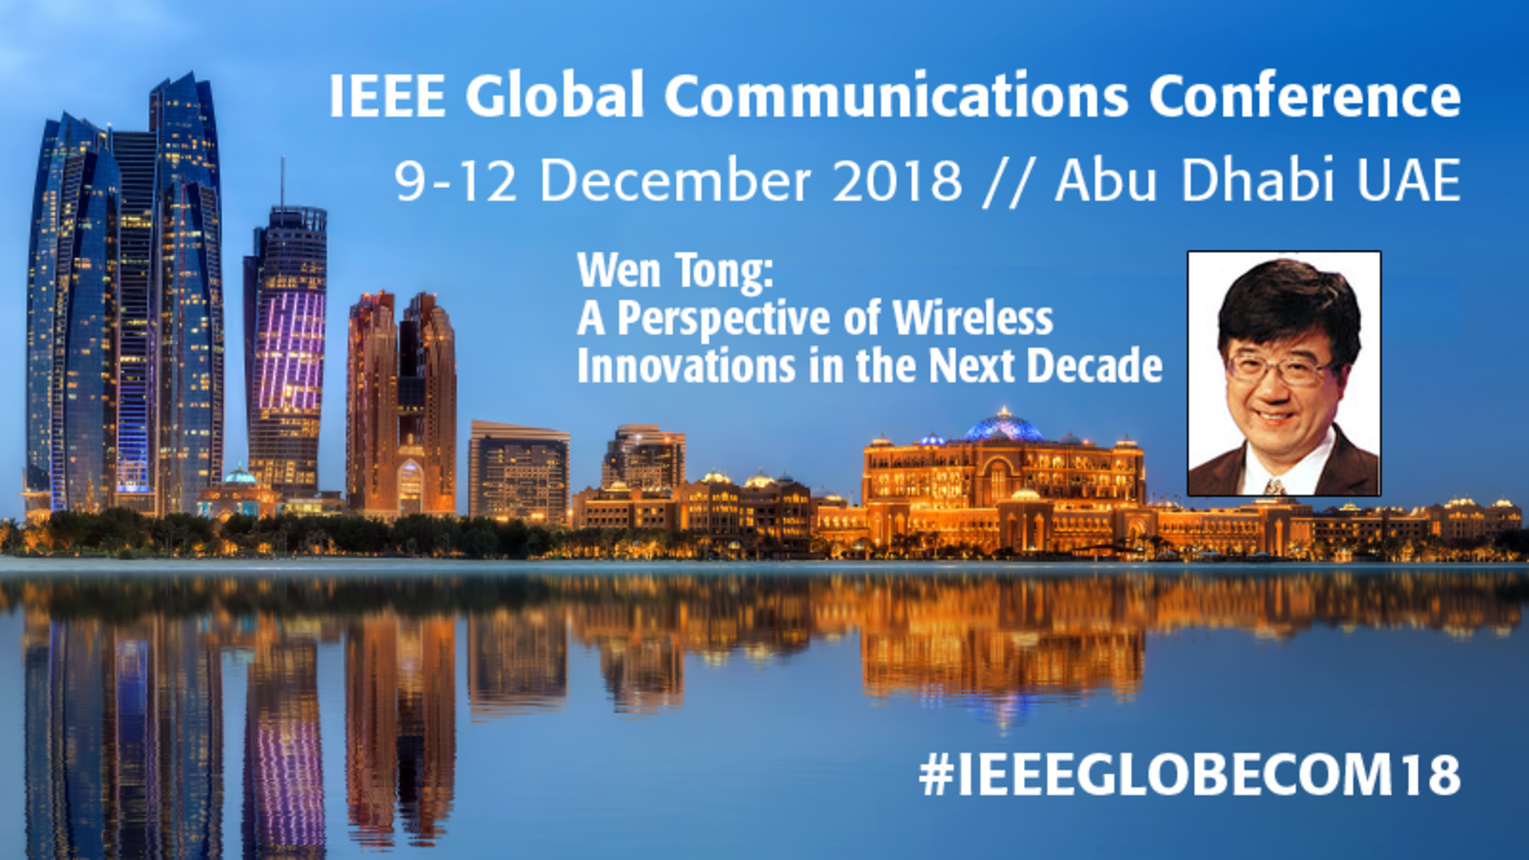 A Perspective of Wireless Innovations in the Next Decade - Wen Tong at IEEE GLOBECOM 2018